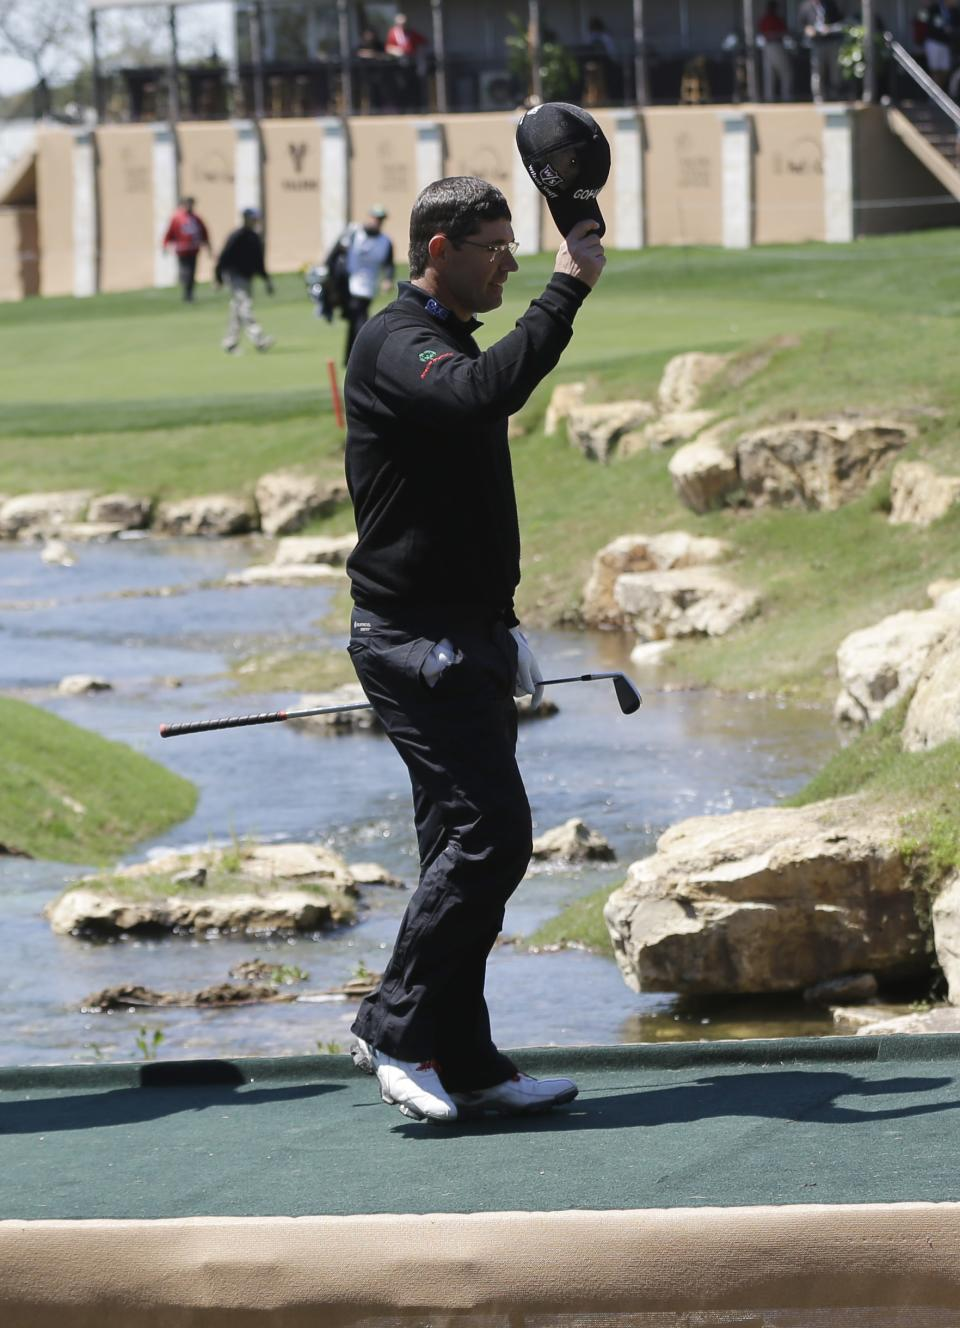 Padraig Harrington, of Ireland, tips his hat to the gallery as crosses a creek the 18th hole during the first round of the Texas Open golf tournament, Thursday, April 4, 2013, in San Antonio.  (AP Photo/Eric Gay)